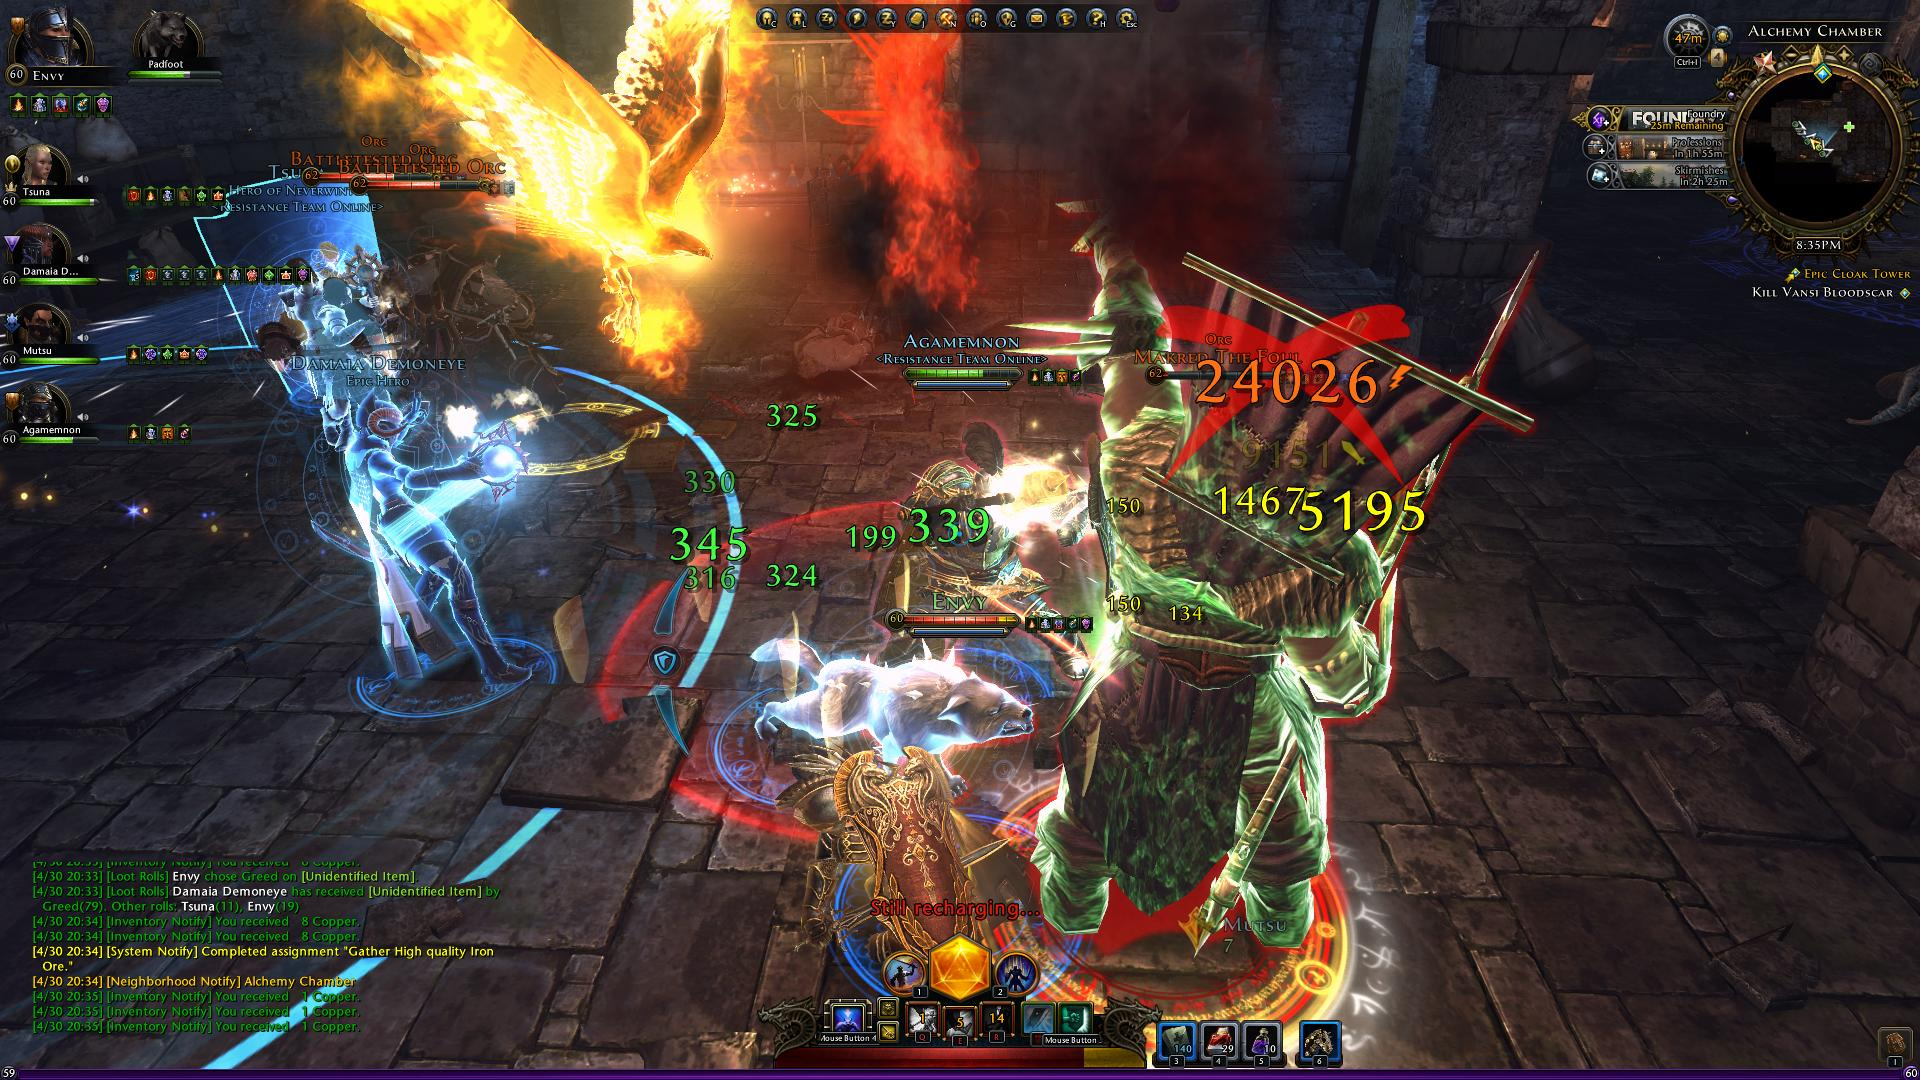 neverwinter guardian fighter dps guide guidescroll